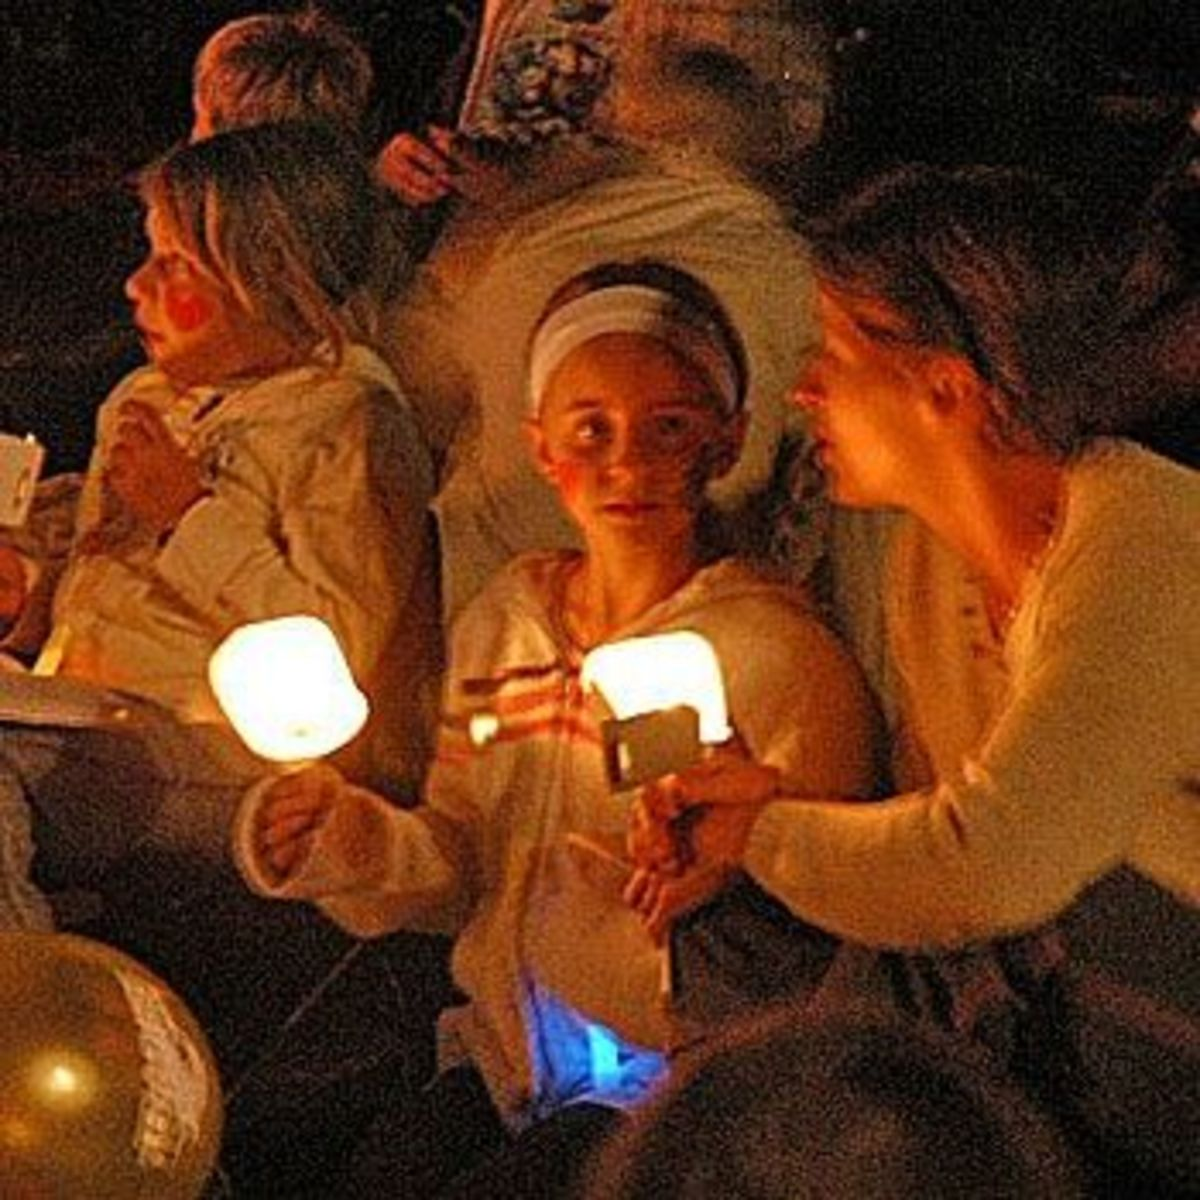 Family Night at Carols by Candlelight